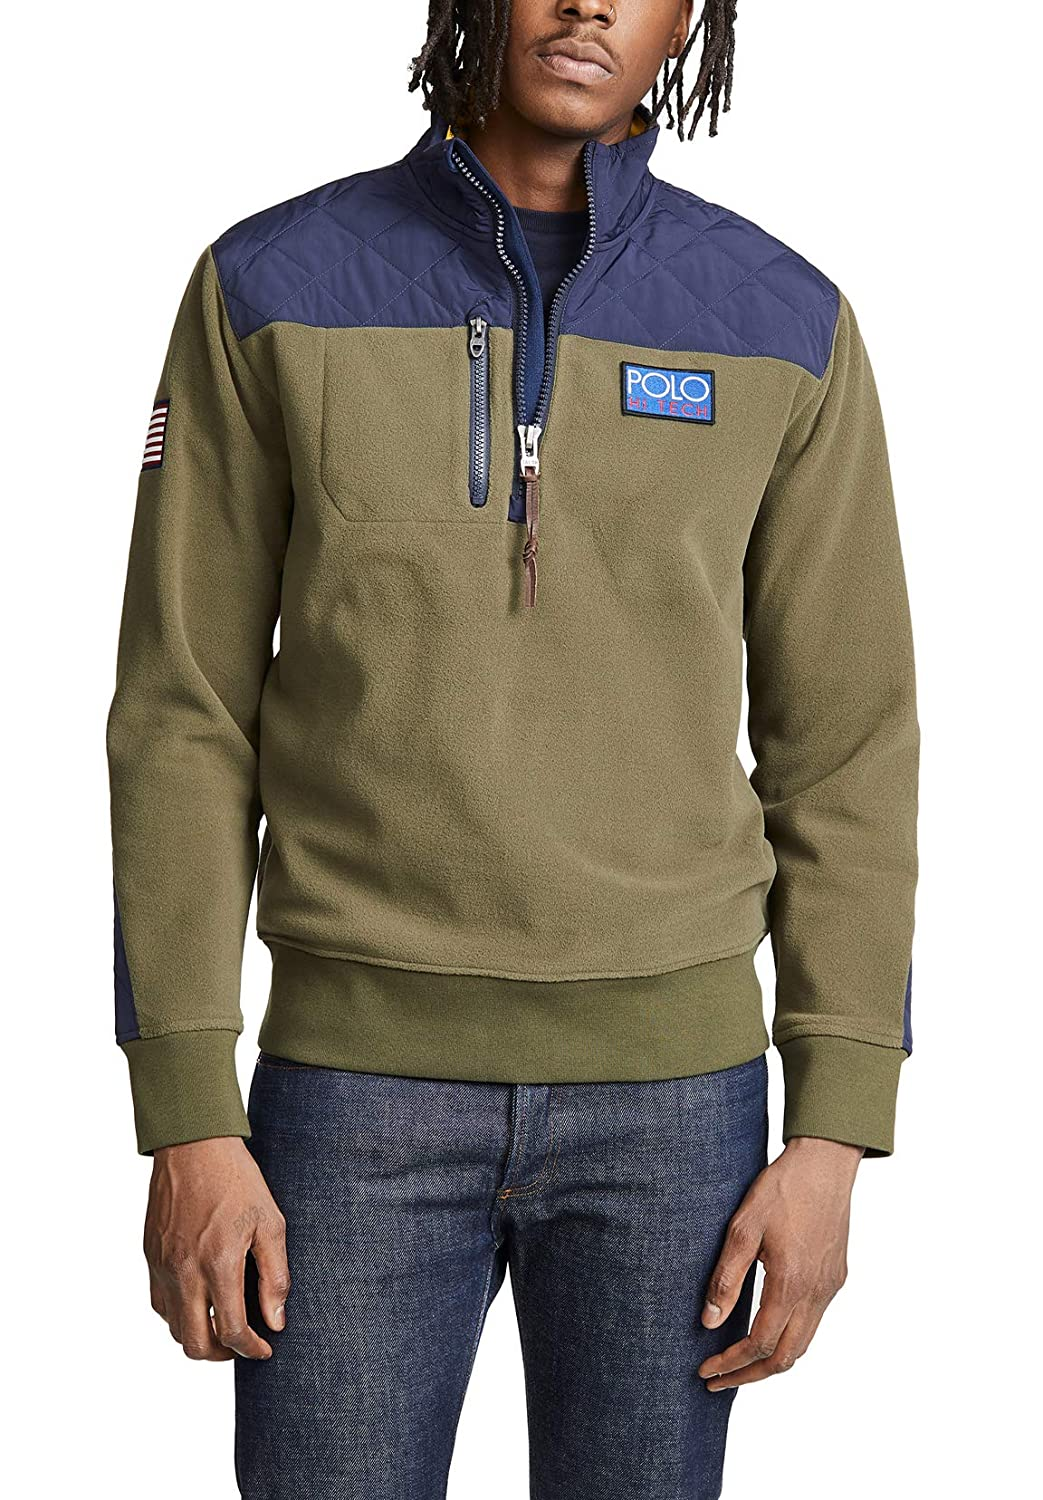 74f57fef3 Polo Ralph Lauren Hi Tech Hybrid Pullover (Olive/Navy, M) at Amazon Men's  Clothing store: